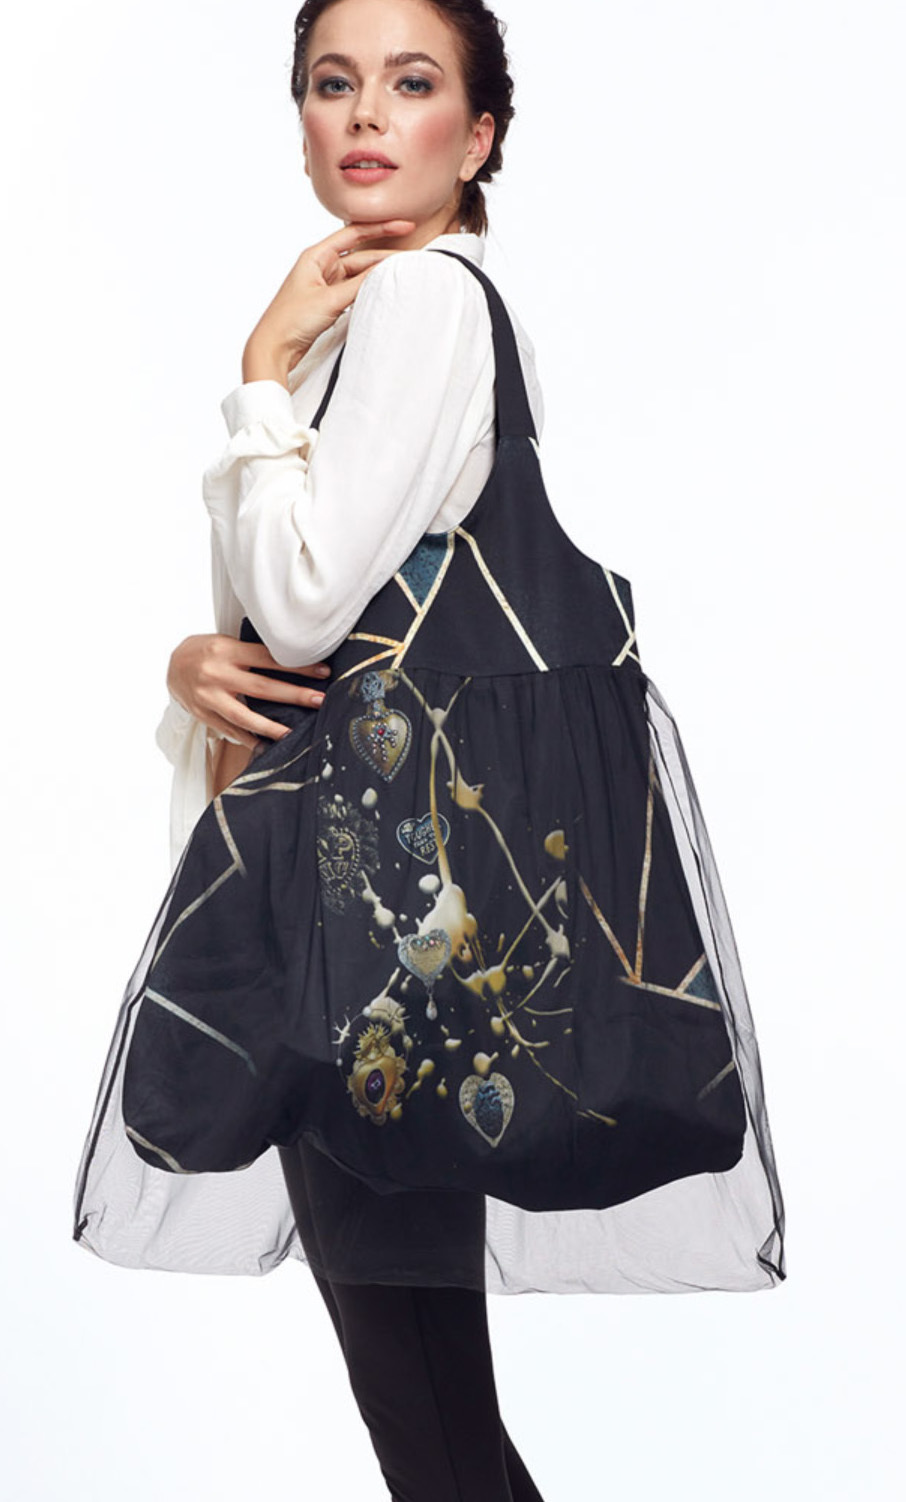 IPNG: Love Me Black Bejeweled Illusion XL Tote Bag With Tulle Compartment (Ships Immed, 2 Left!) IPNG_Ab-011_N